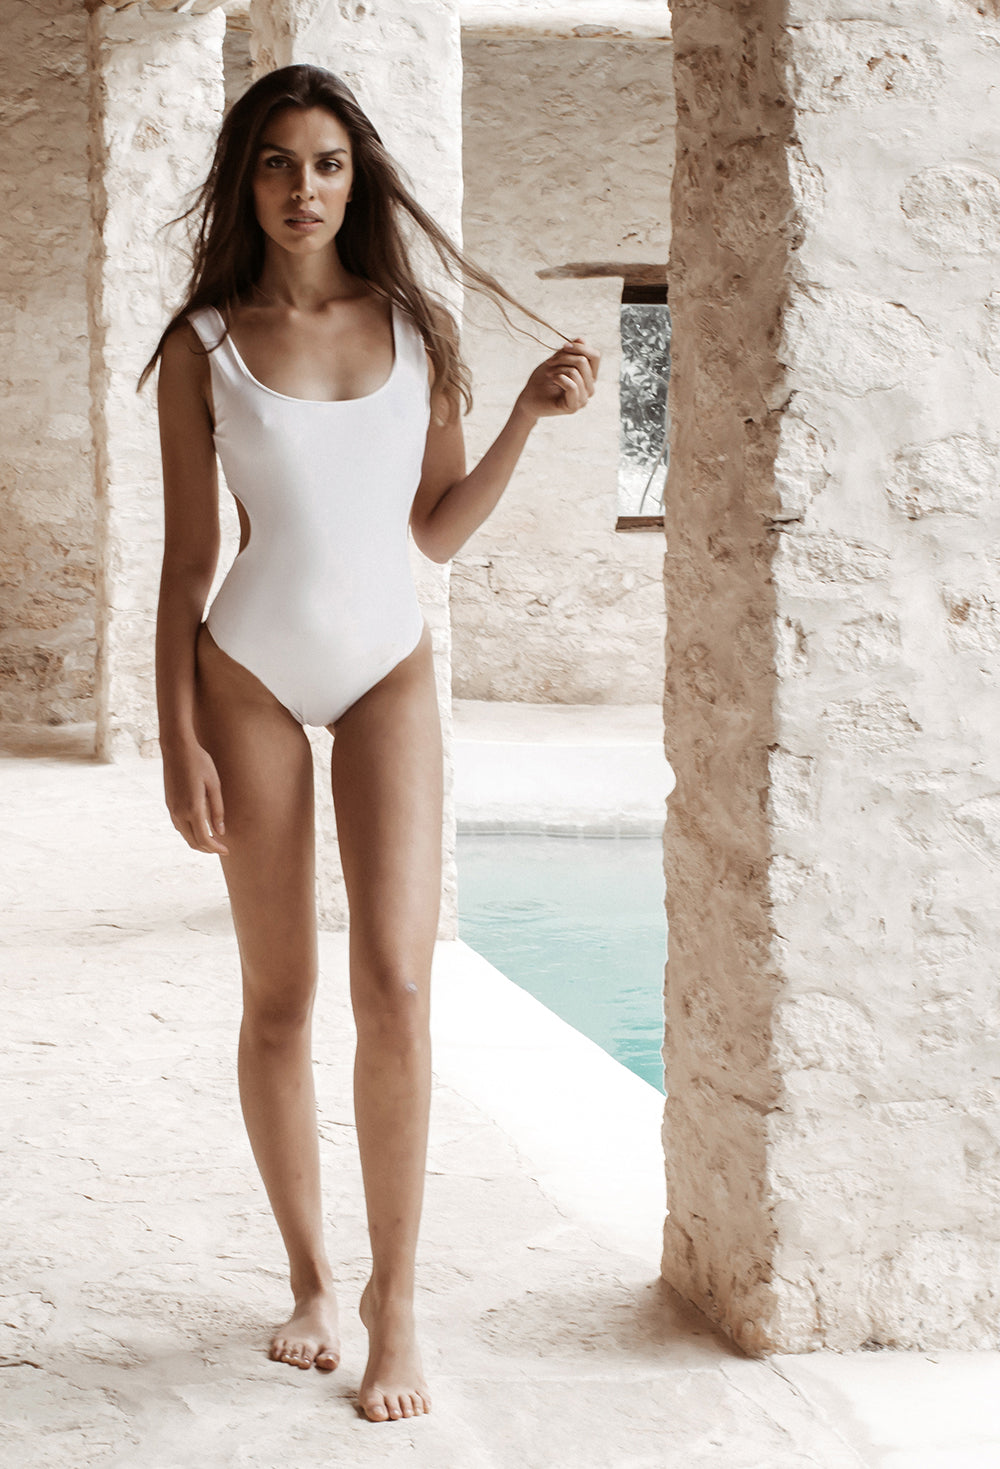 Maillot Swimsuit Apricoss, made in Morocco, available at Dar D'art Le Collectif